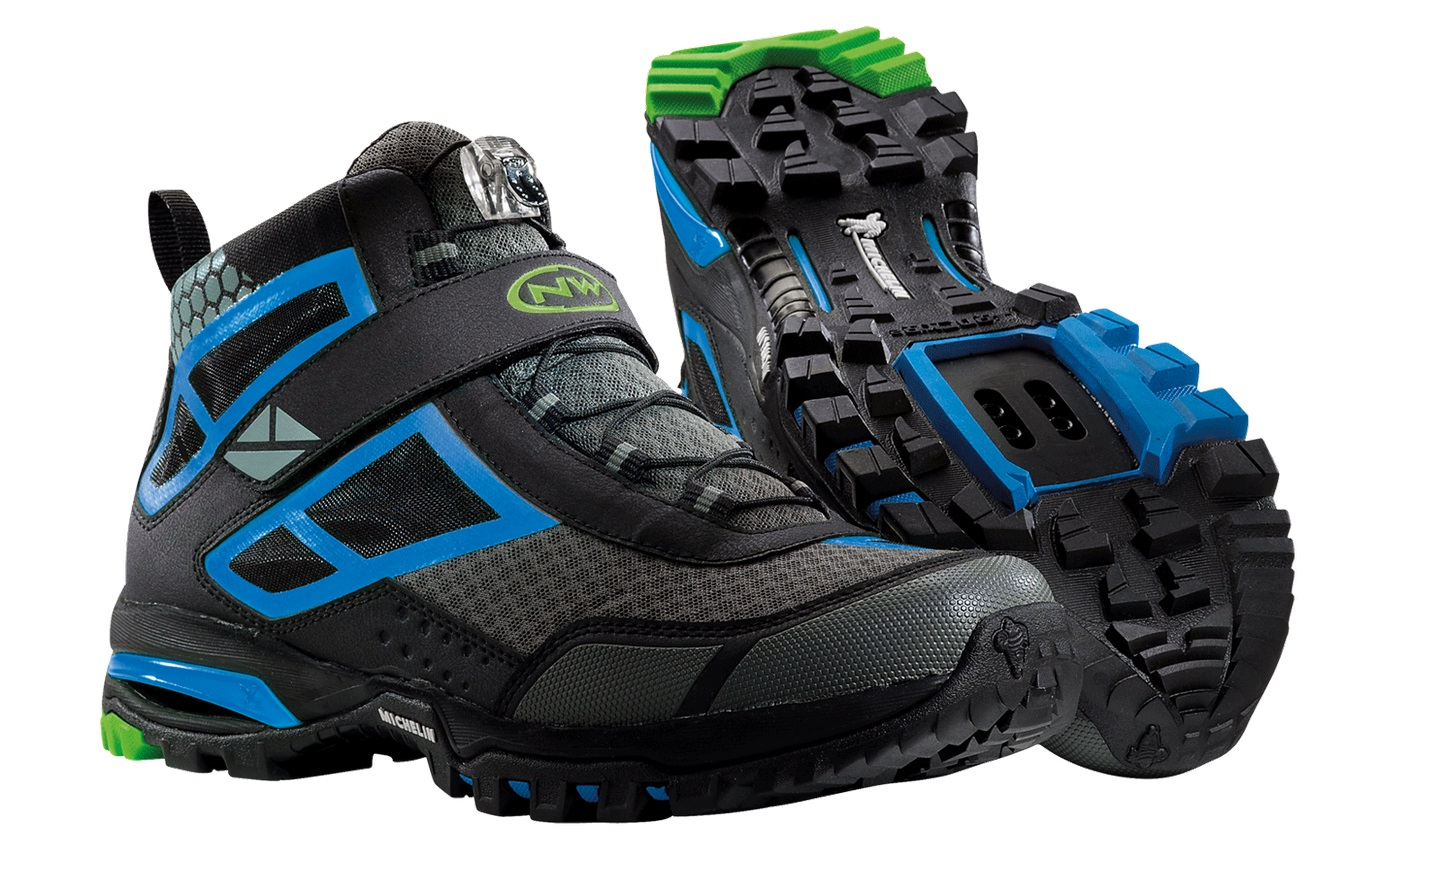 Northwave Enduro Mid Mtb Shoes Review